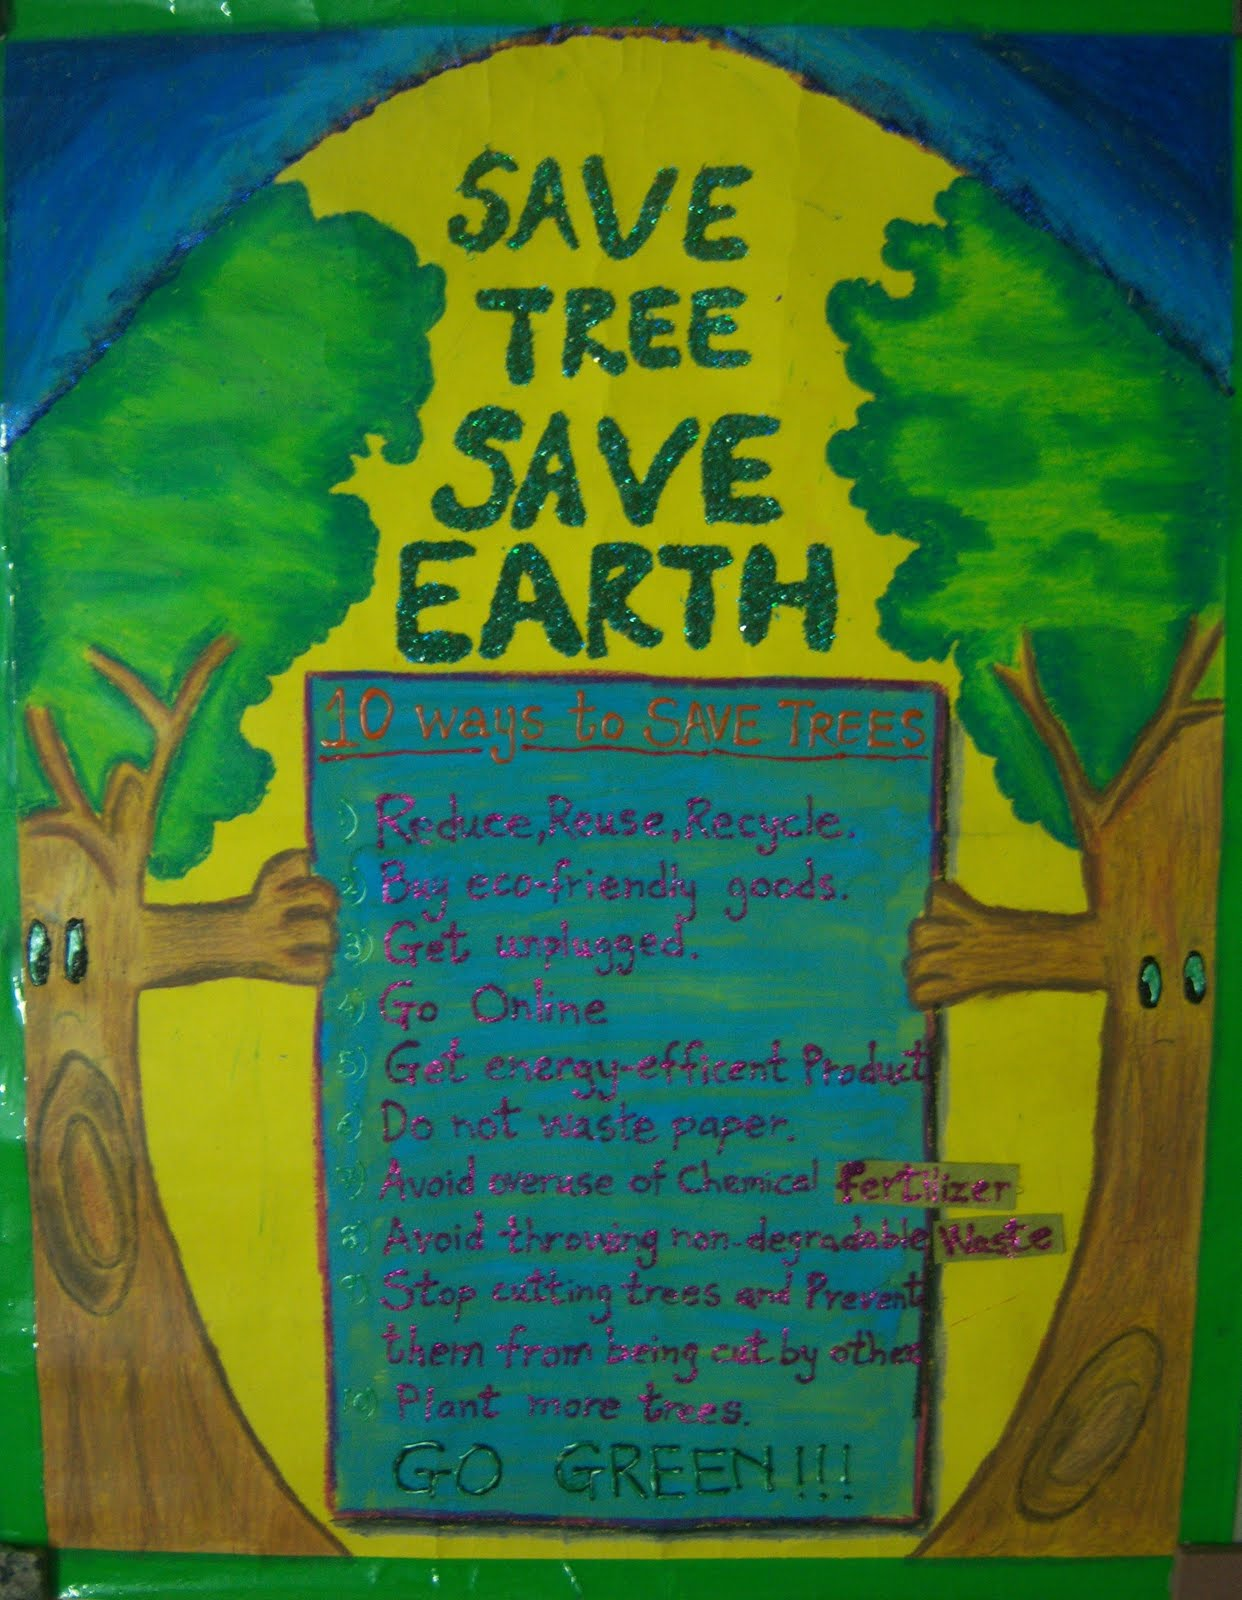 on my board right now...: Save Earth, Save Tree for Rangoli Designs With Theme Go Green  28cpg